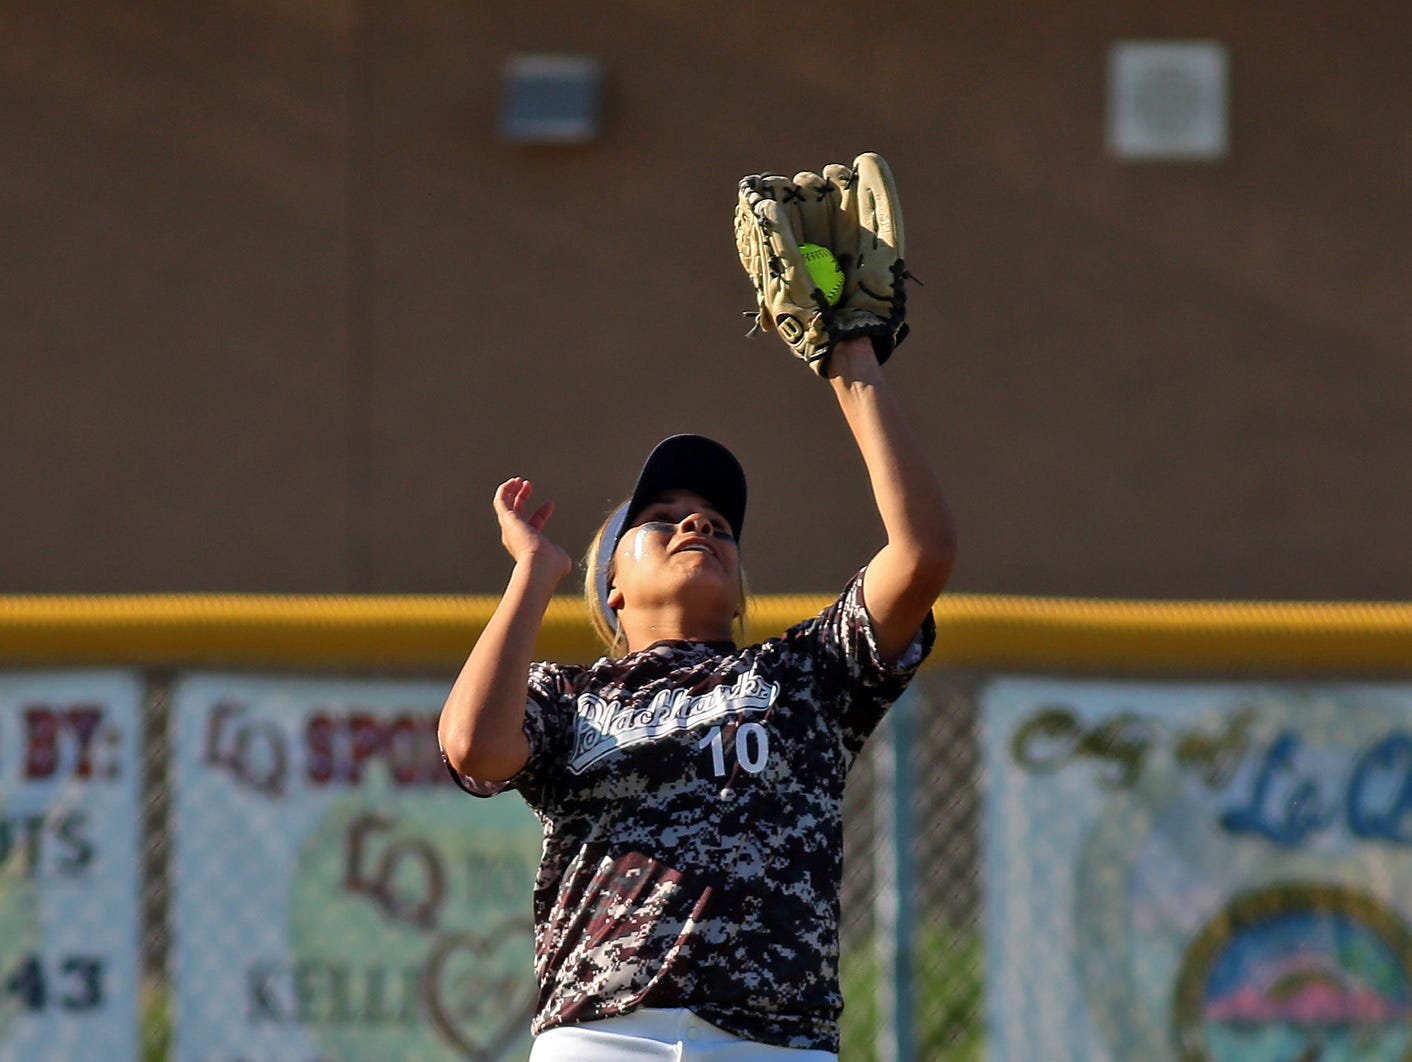 La Quinta's Mia Olvera (10) catches a ball hit by Shadow Hills during the first game of a double header on Thursday afternoon, March 26, 2015 at La Quinta. La Quinta won the first game 7-5 and the second game 4-1.